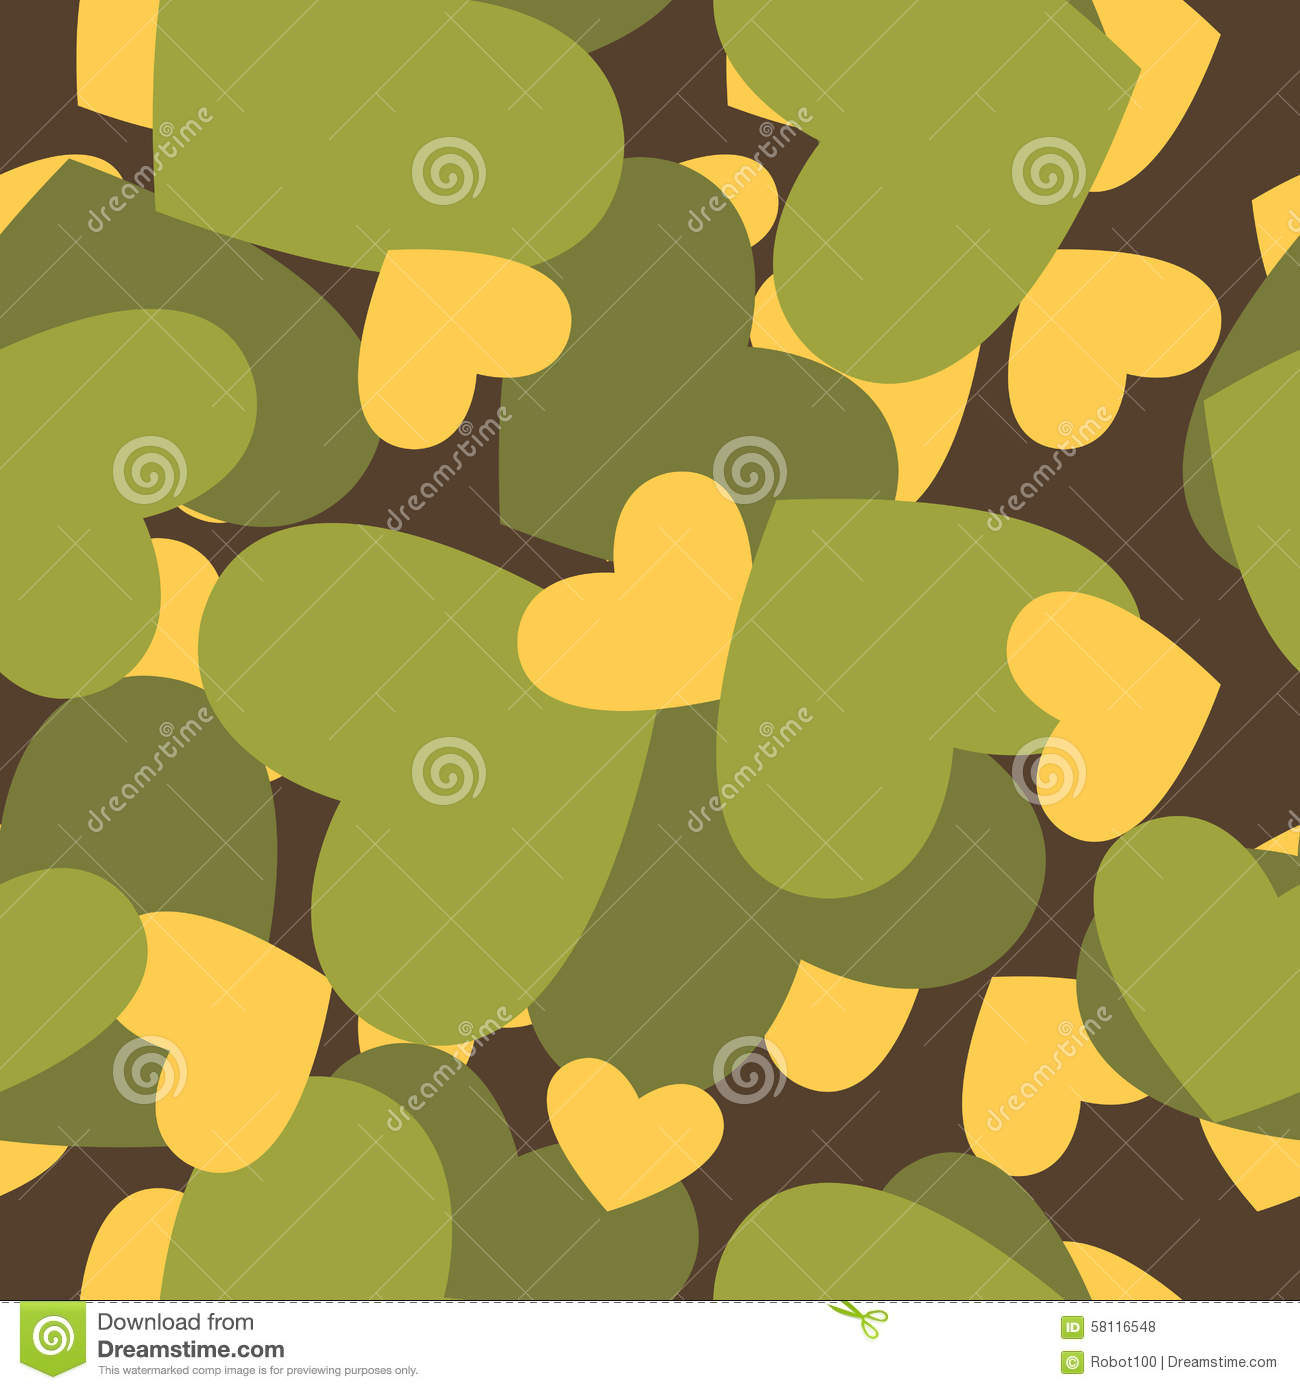 Military Texture For Love Camouflage Army Seamless